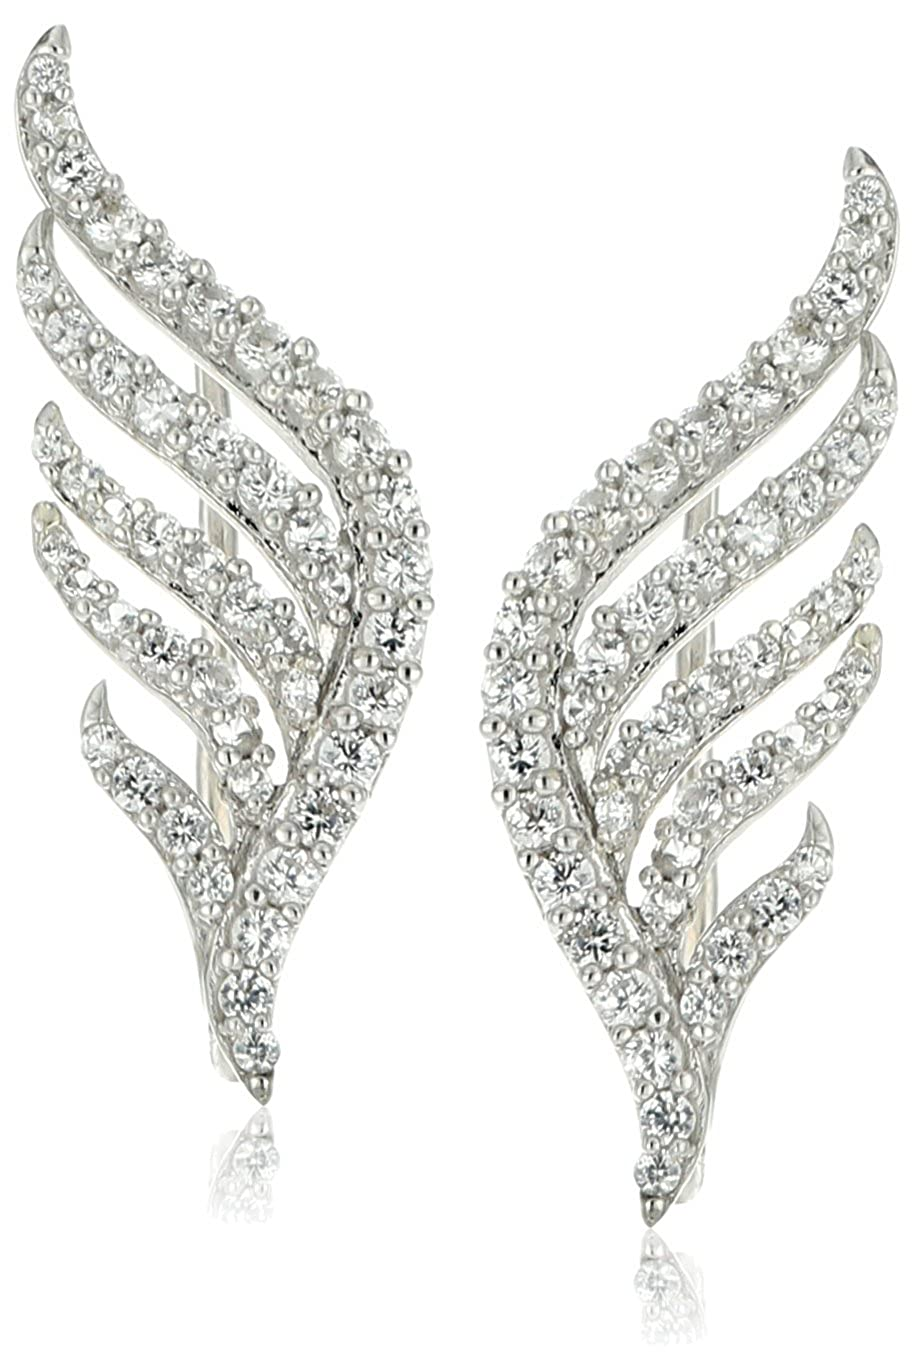 XPY Sterling Silver Created White Sapphire Winged Climber Ear Cuffs Amazon Collection SAX77205CW-AM